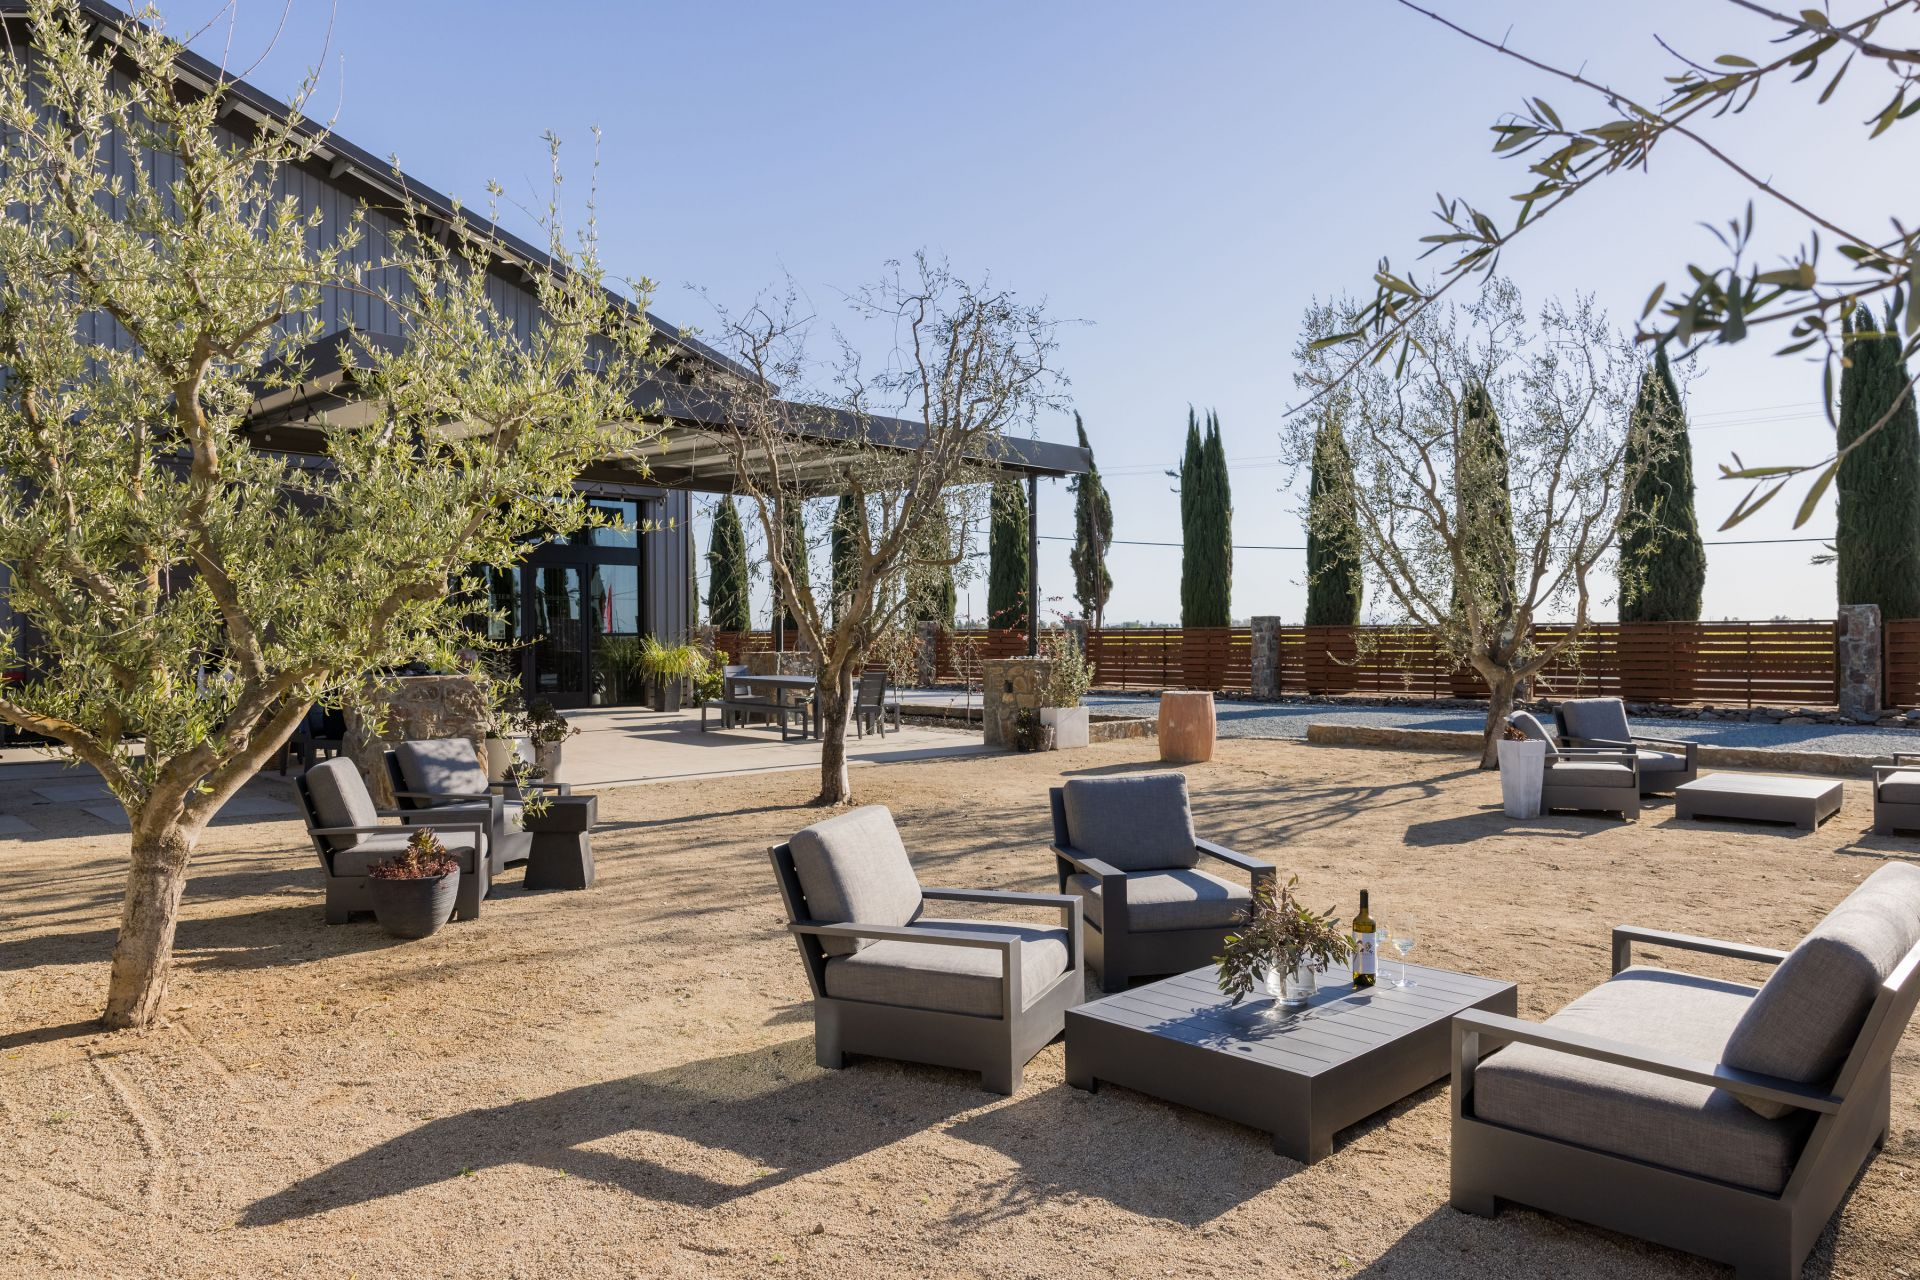 patio furniture and olive trees